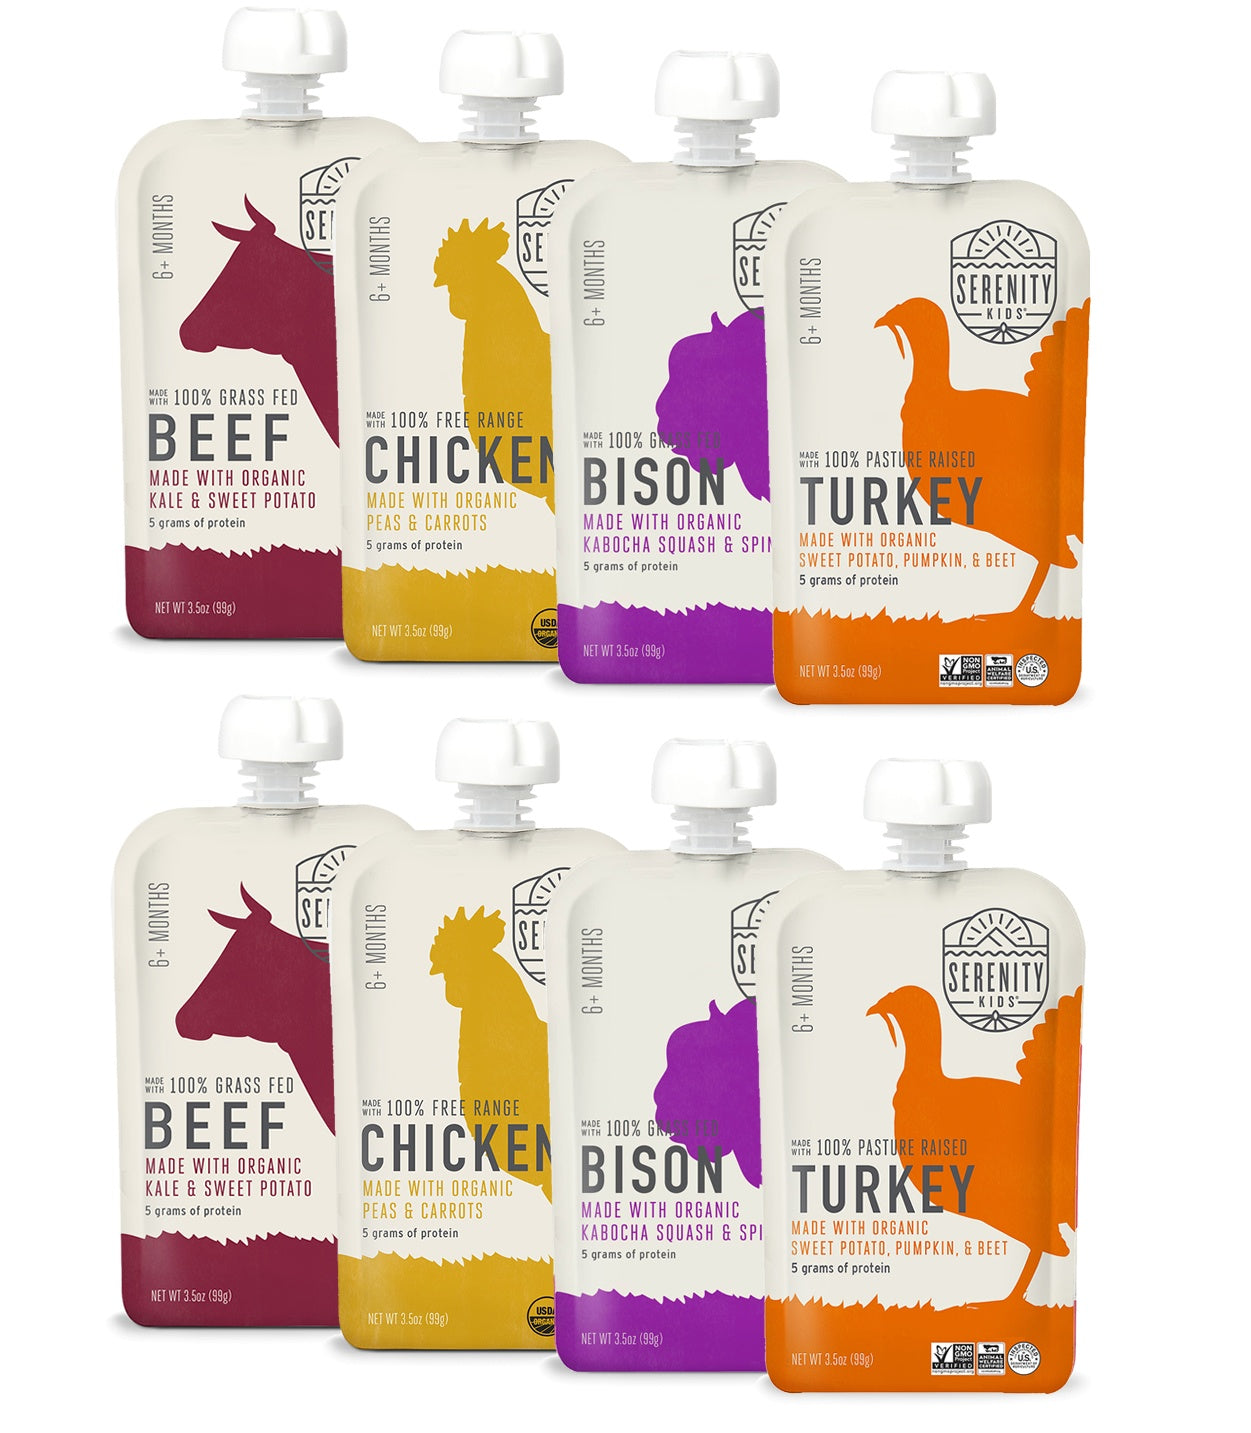 Ethically Sourced Meats Variety Pack